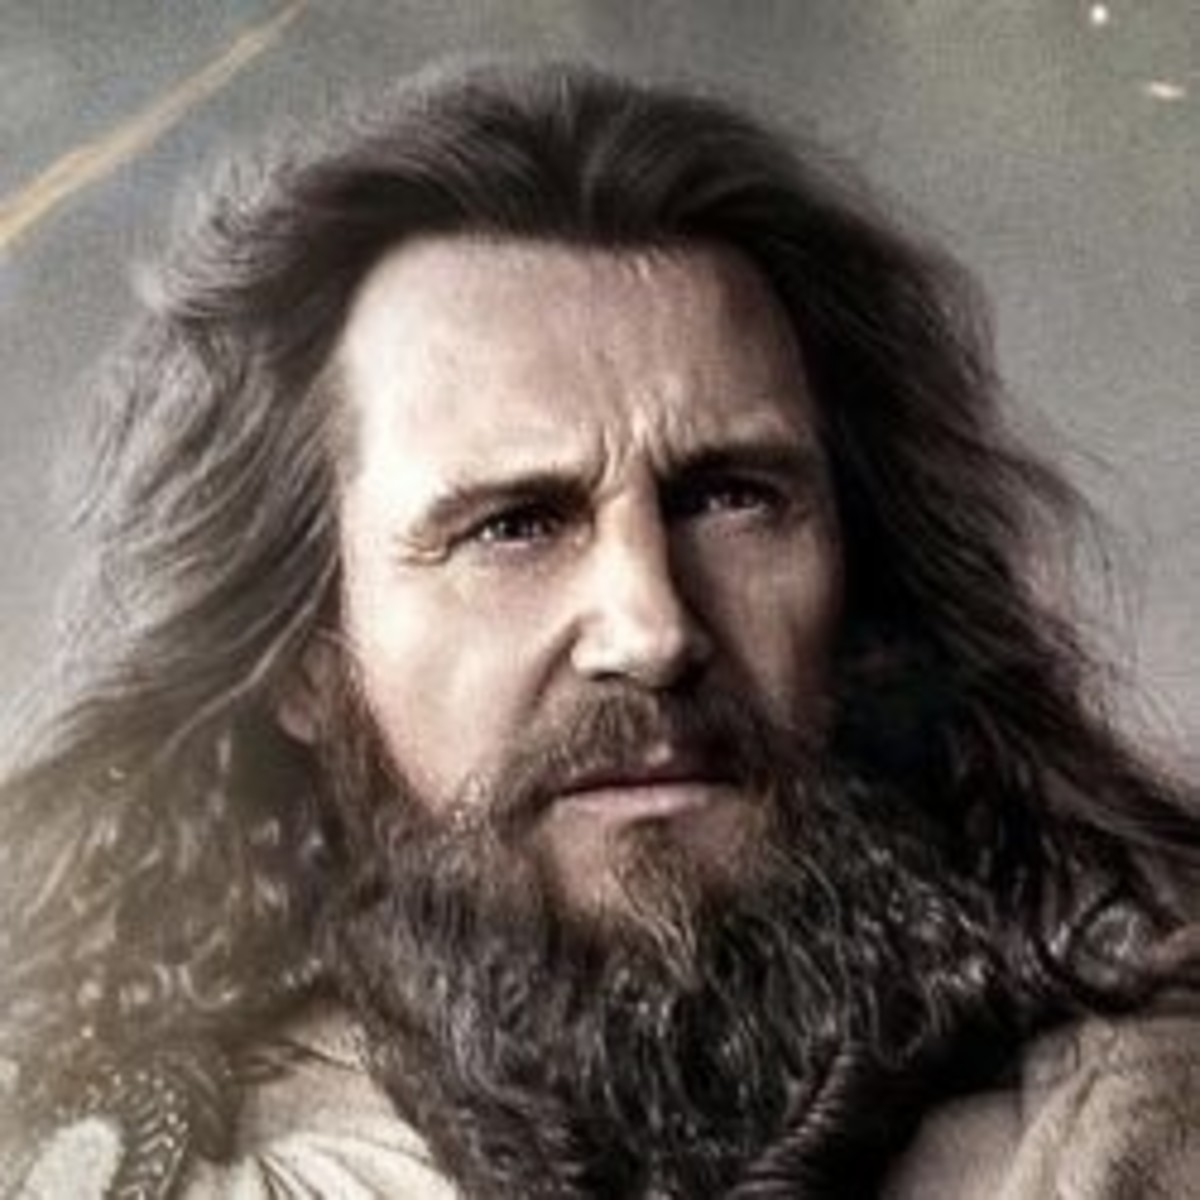 Zeus portrayed by Liam Neeson